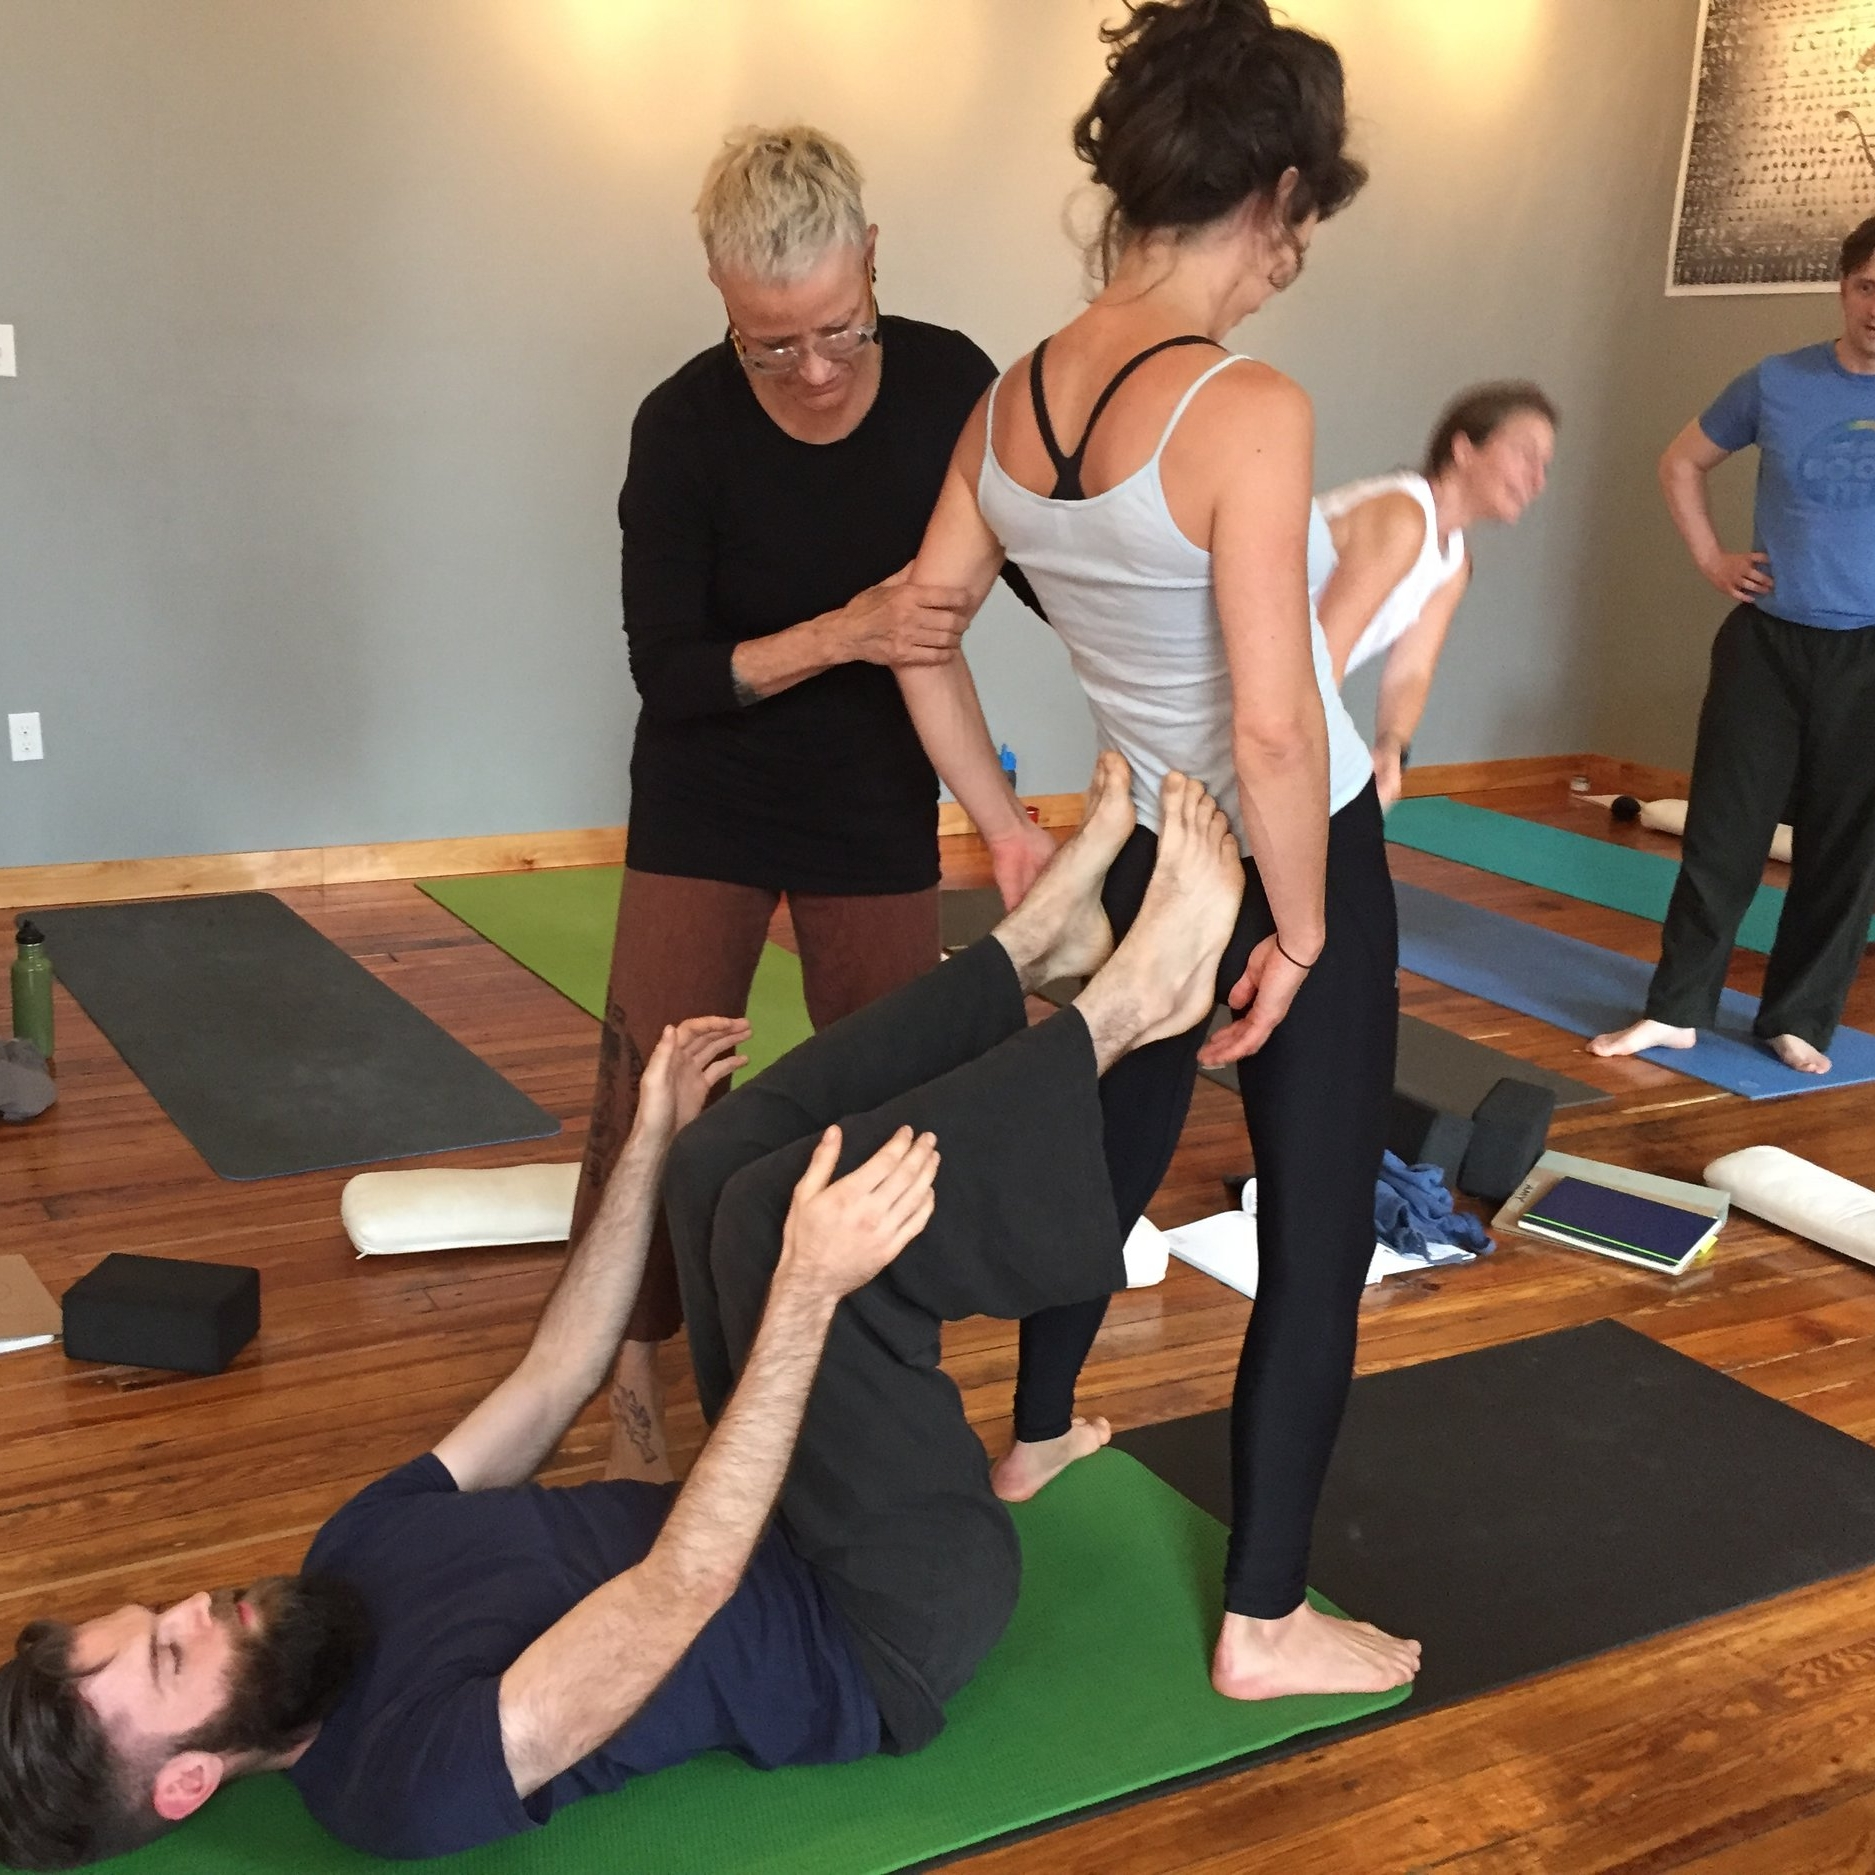 Nina Be showing yoga teachers how to do hands on assists during Yoga Teacher Training